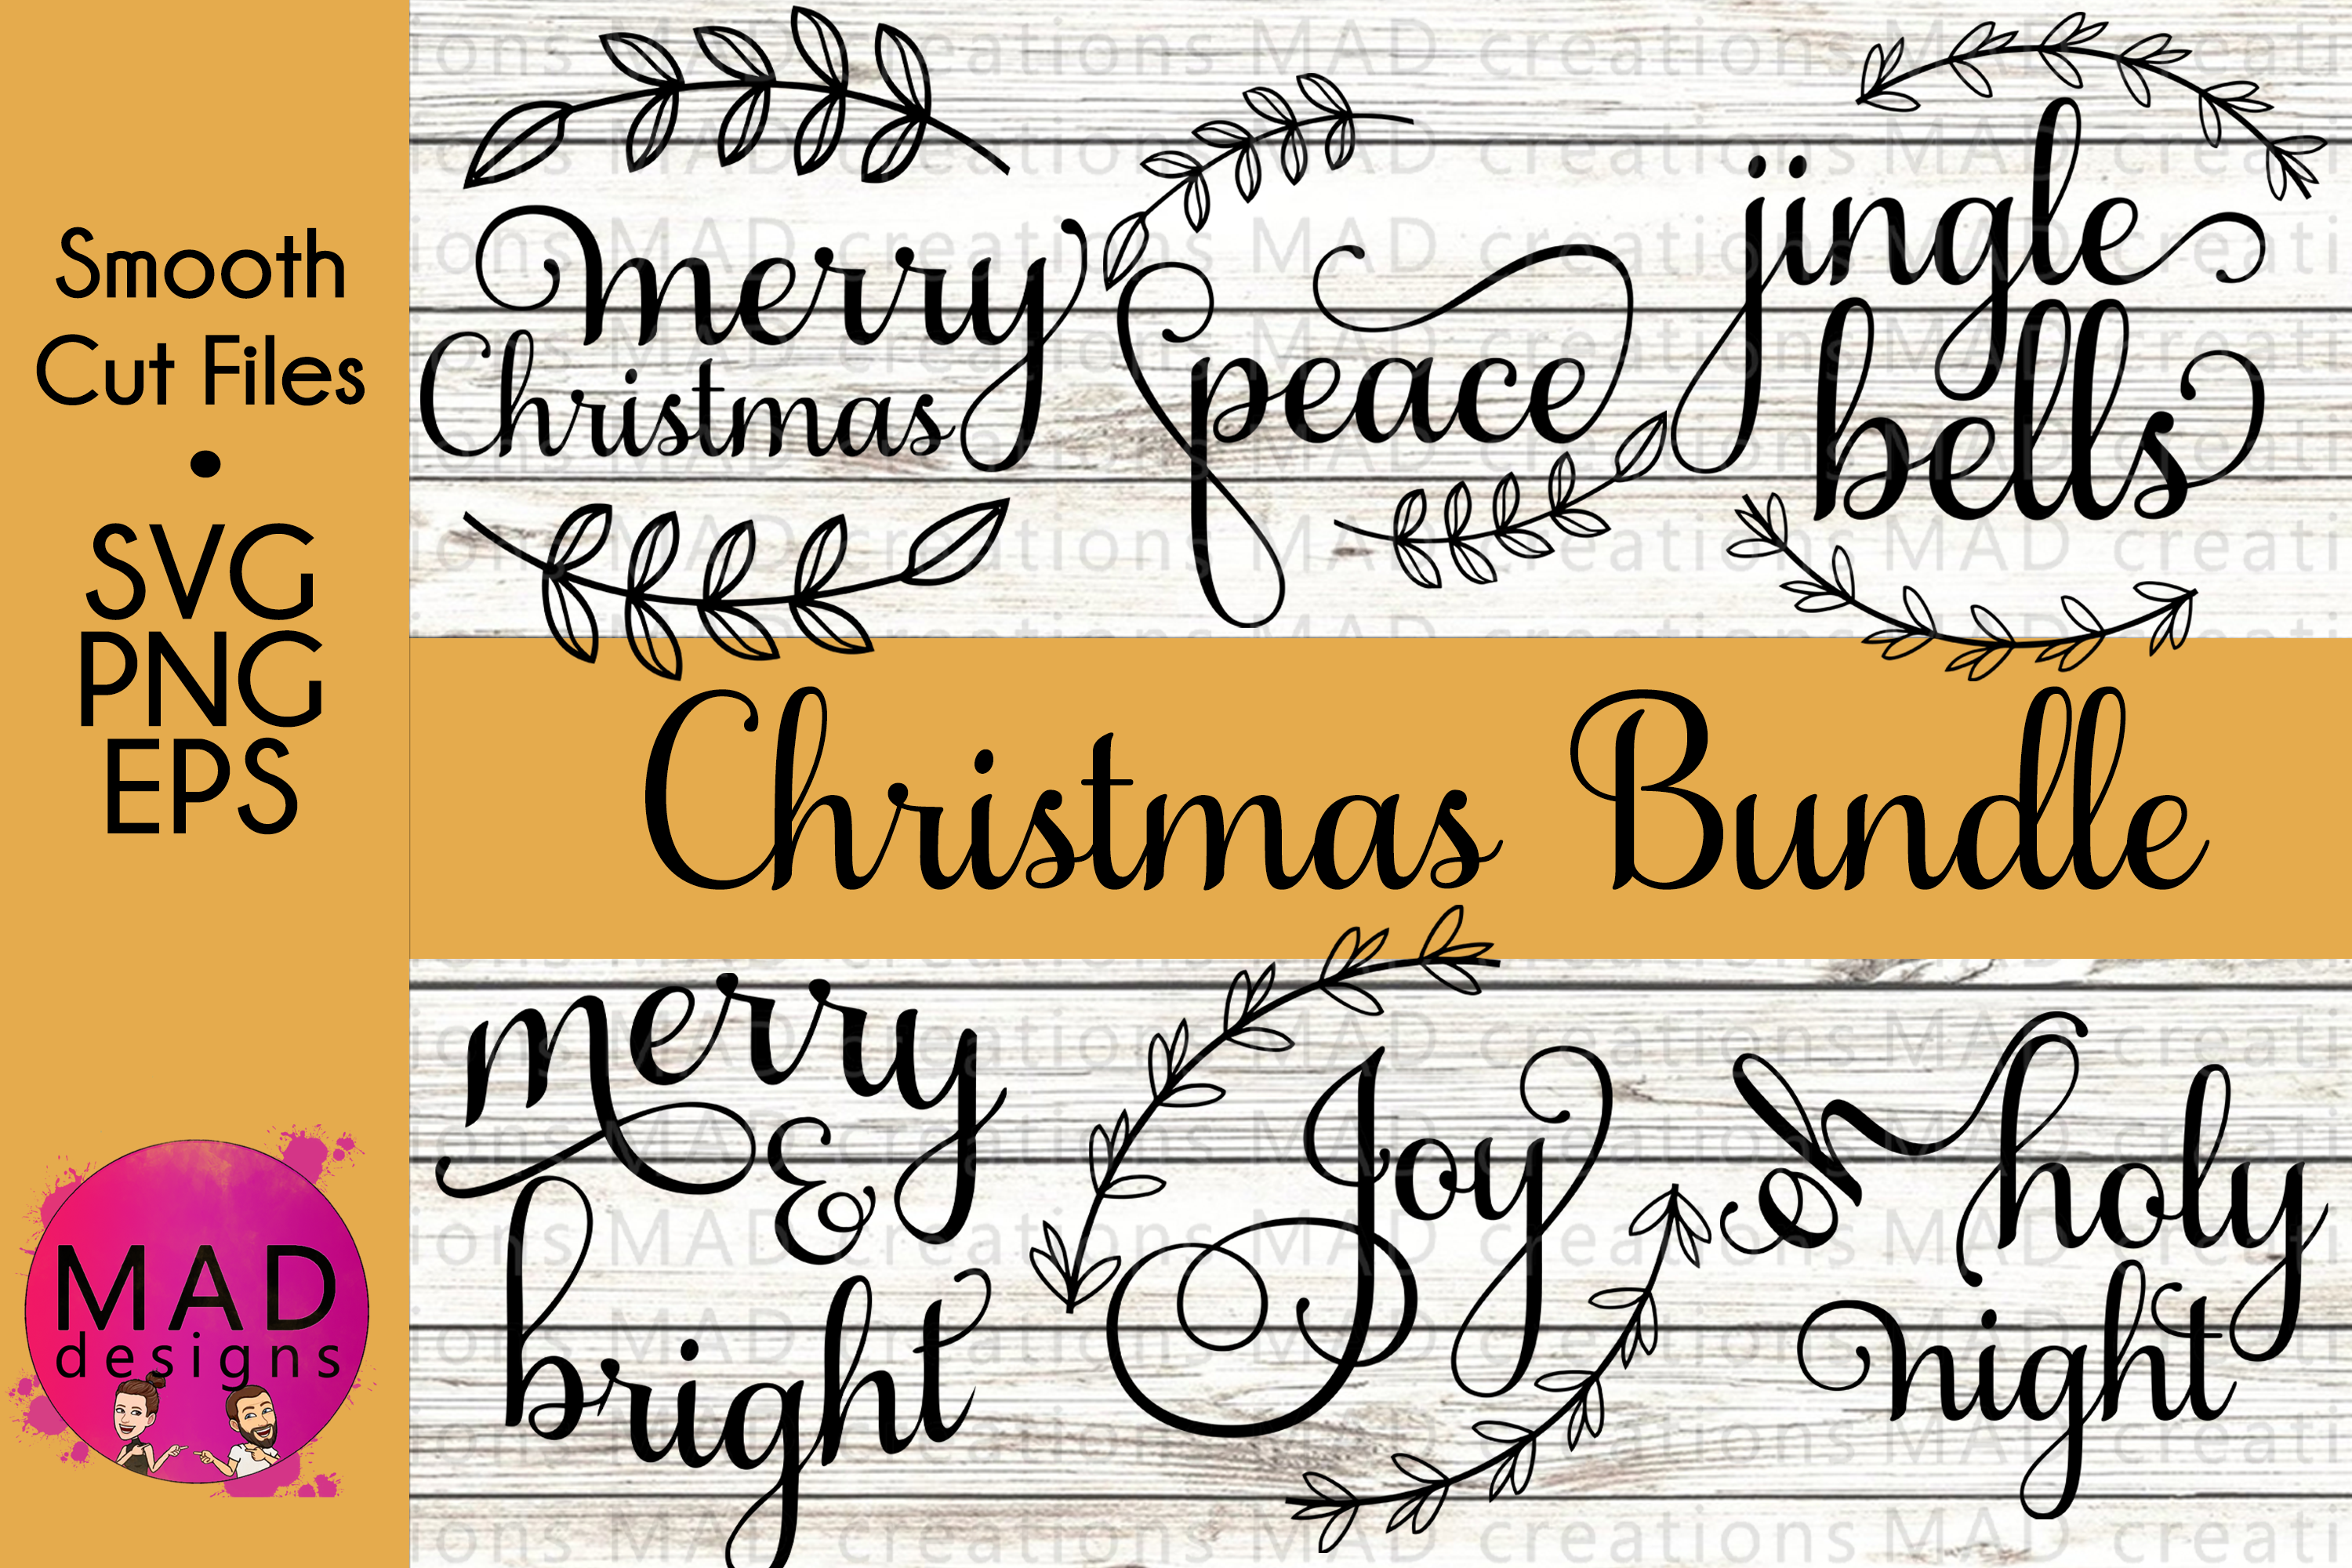 Download Free Fancy Christmas Bundle Graphic By Maddesigns718 Creative Fabrica for Cricut Explore, Silhouette and other cutting machines.